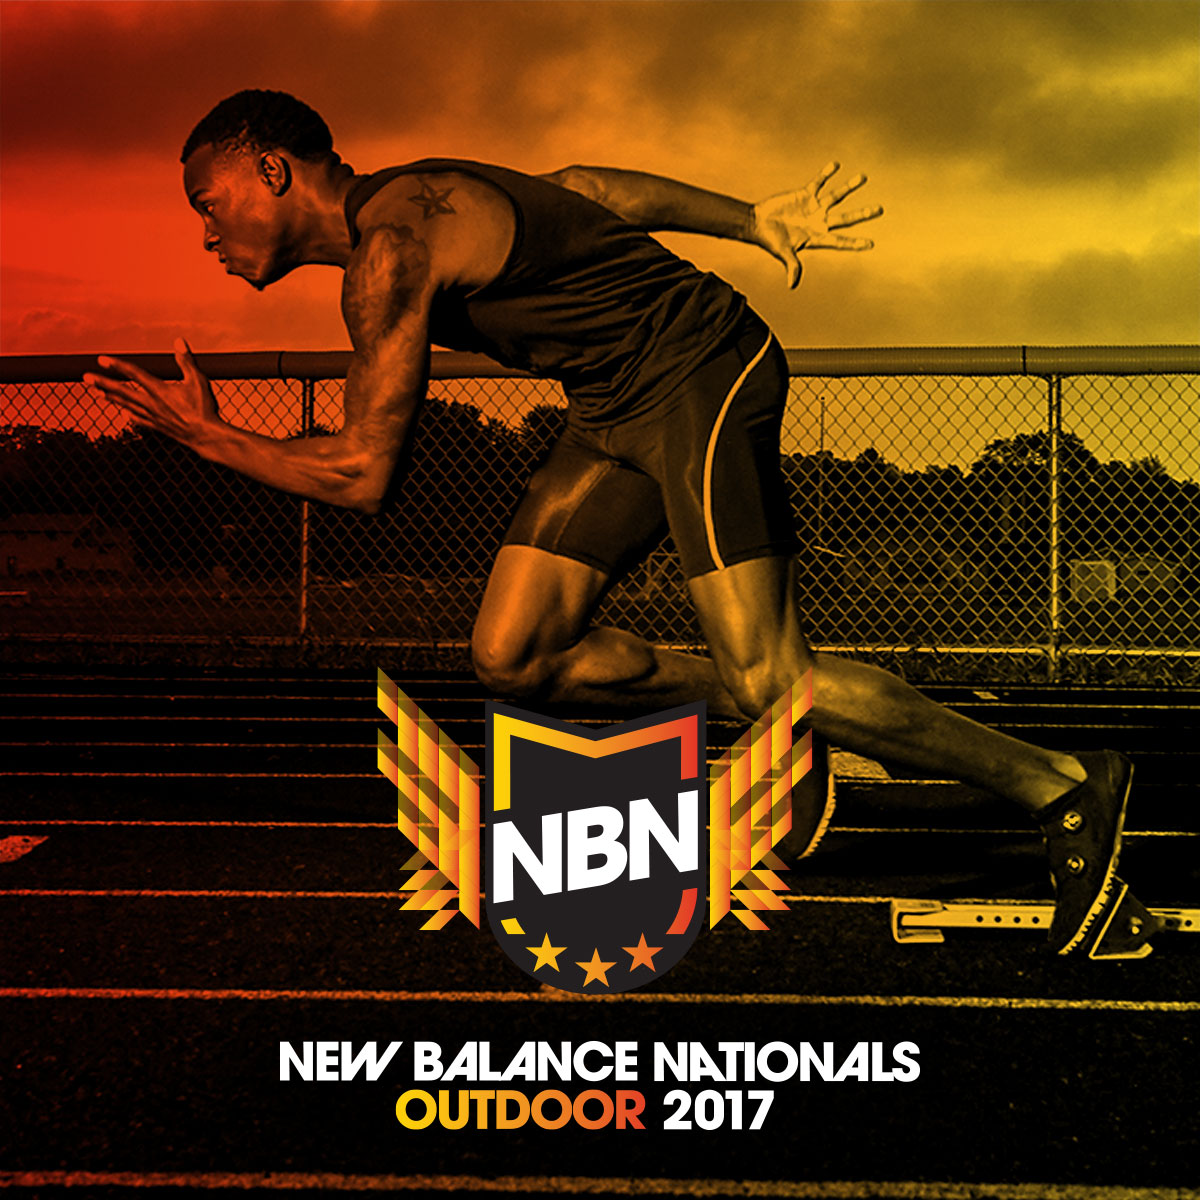 New Balance Nationals Outdoor 2017: The Eastbay Experience